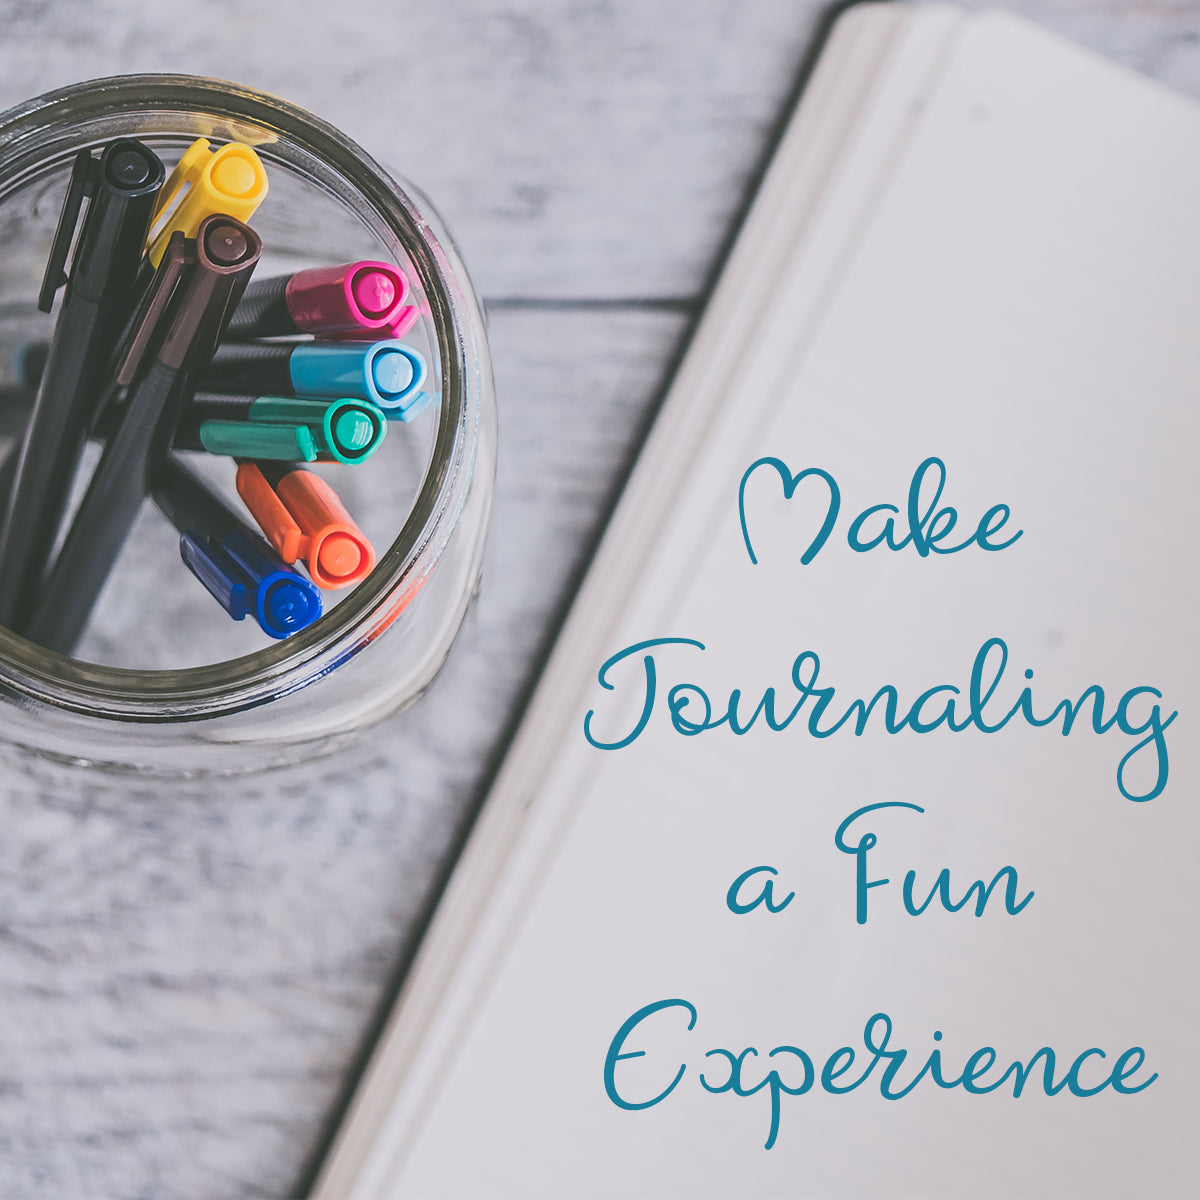 Make journaling a fun experience.